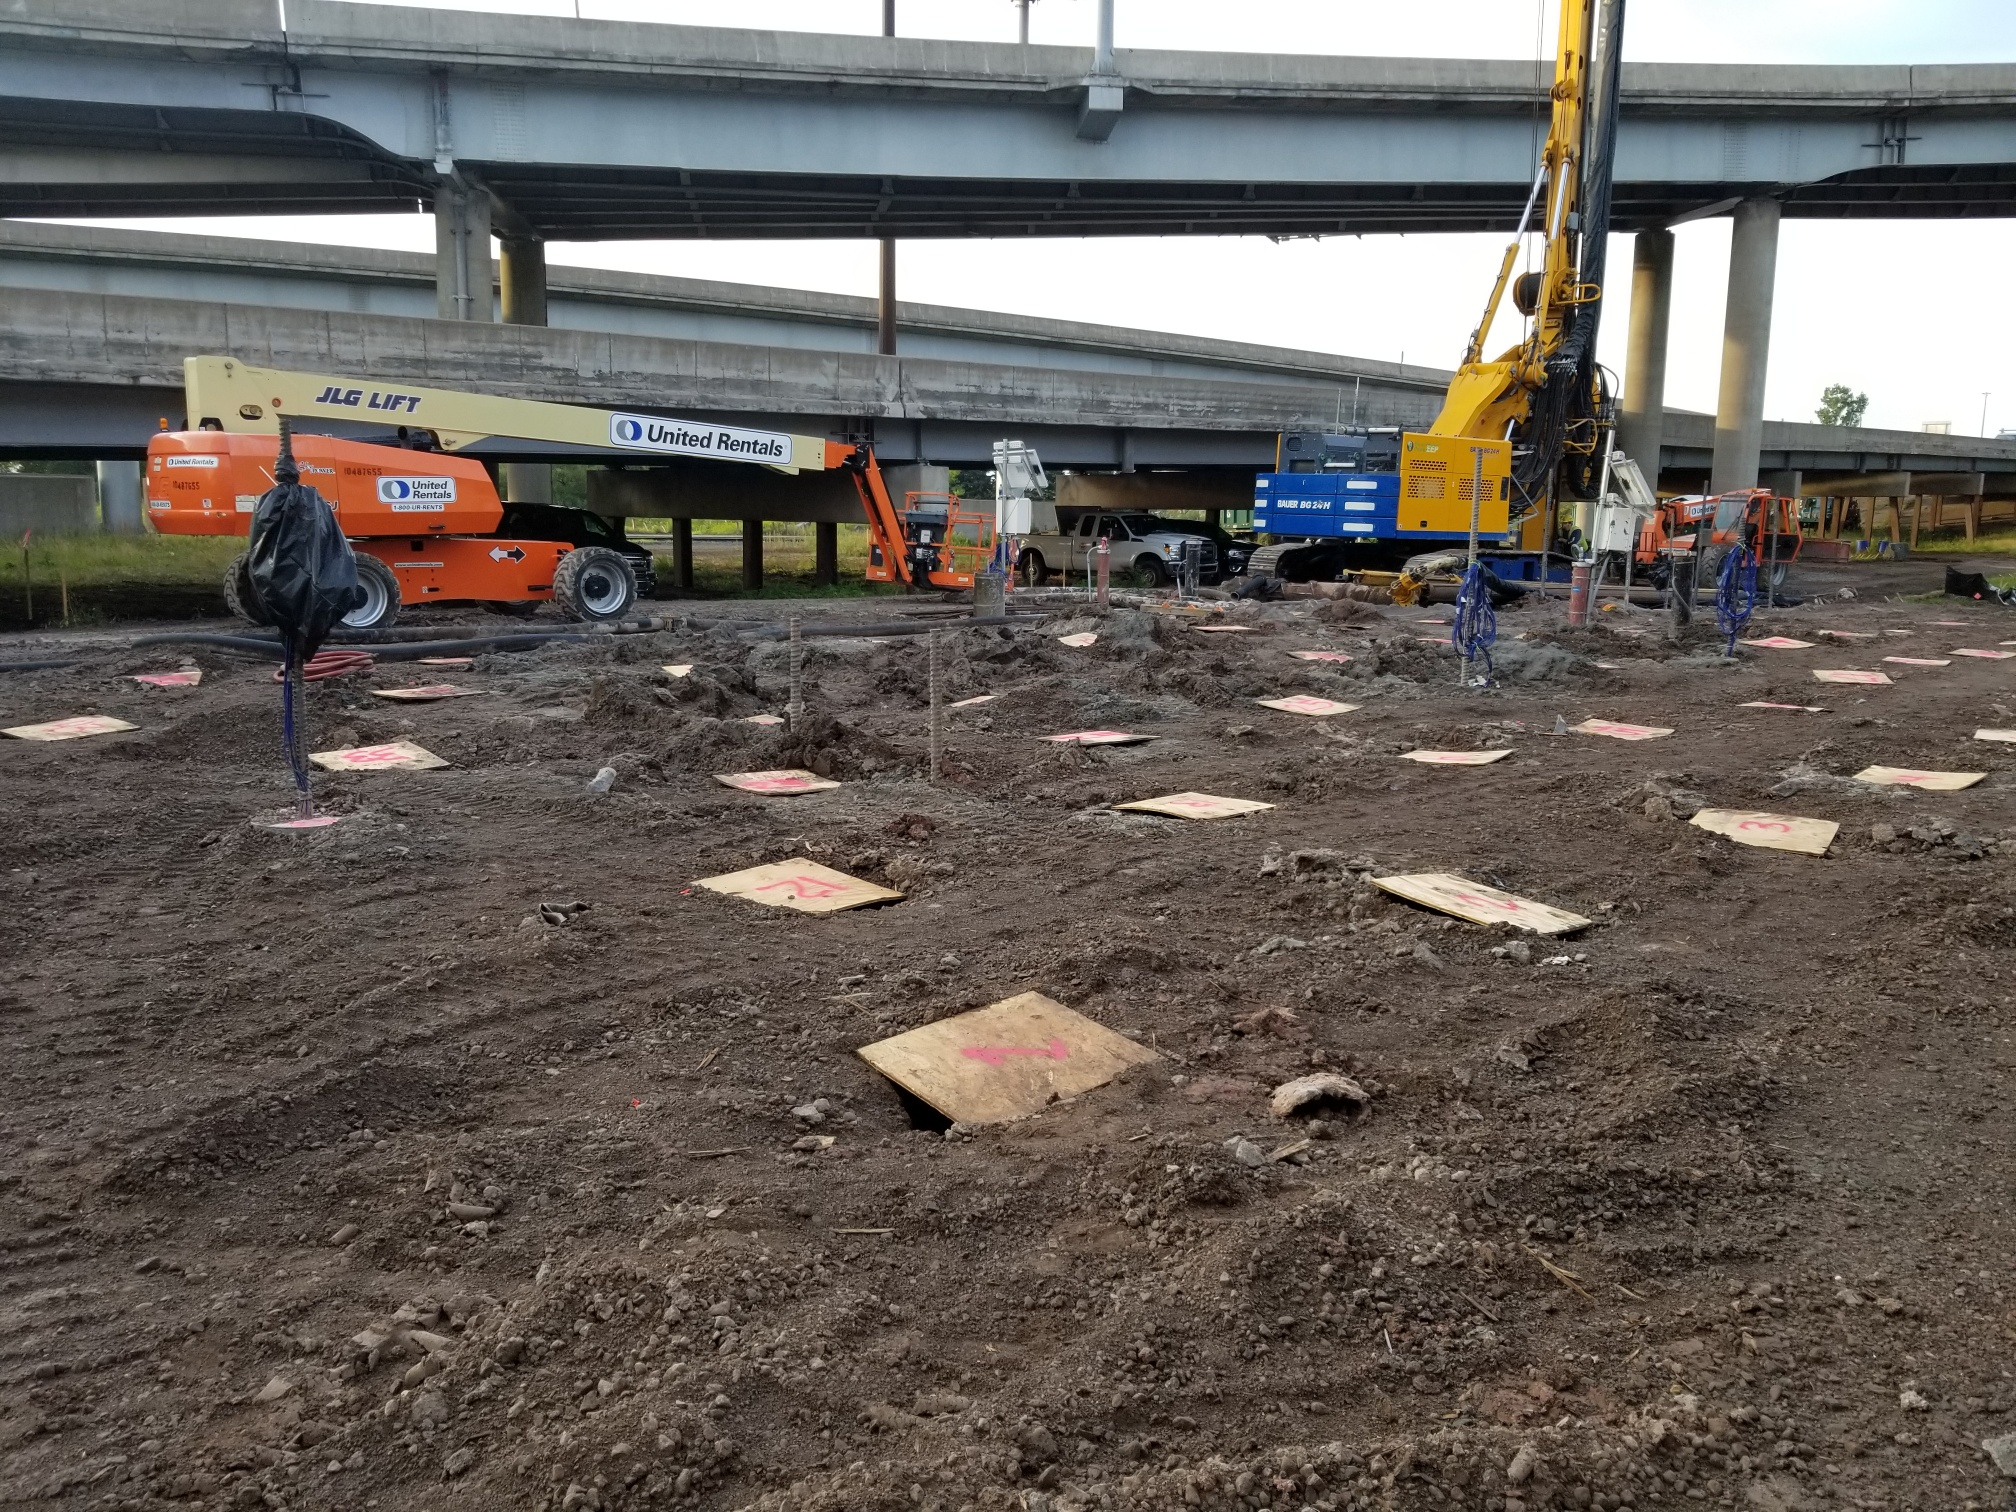 Placing ground improvements, which is basically a grid pattern of 16 grout columns inserted into the ground to a hard layer. This will support the eventual roadway fill.